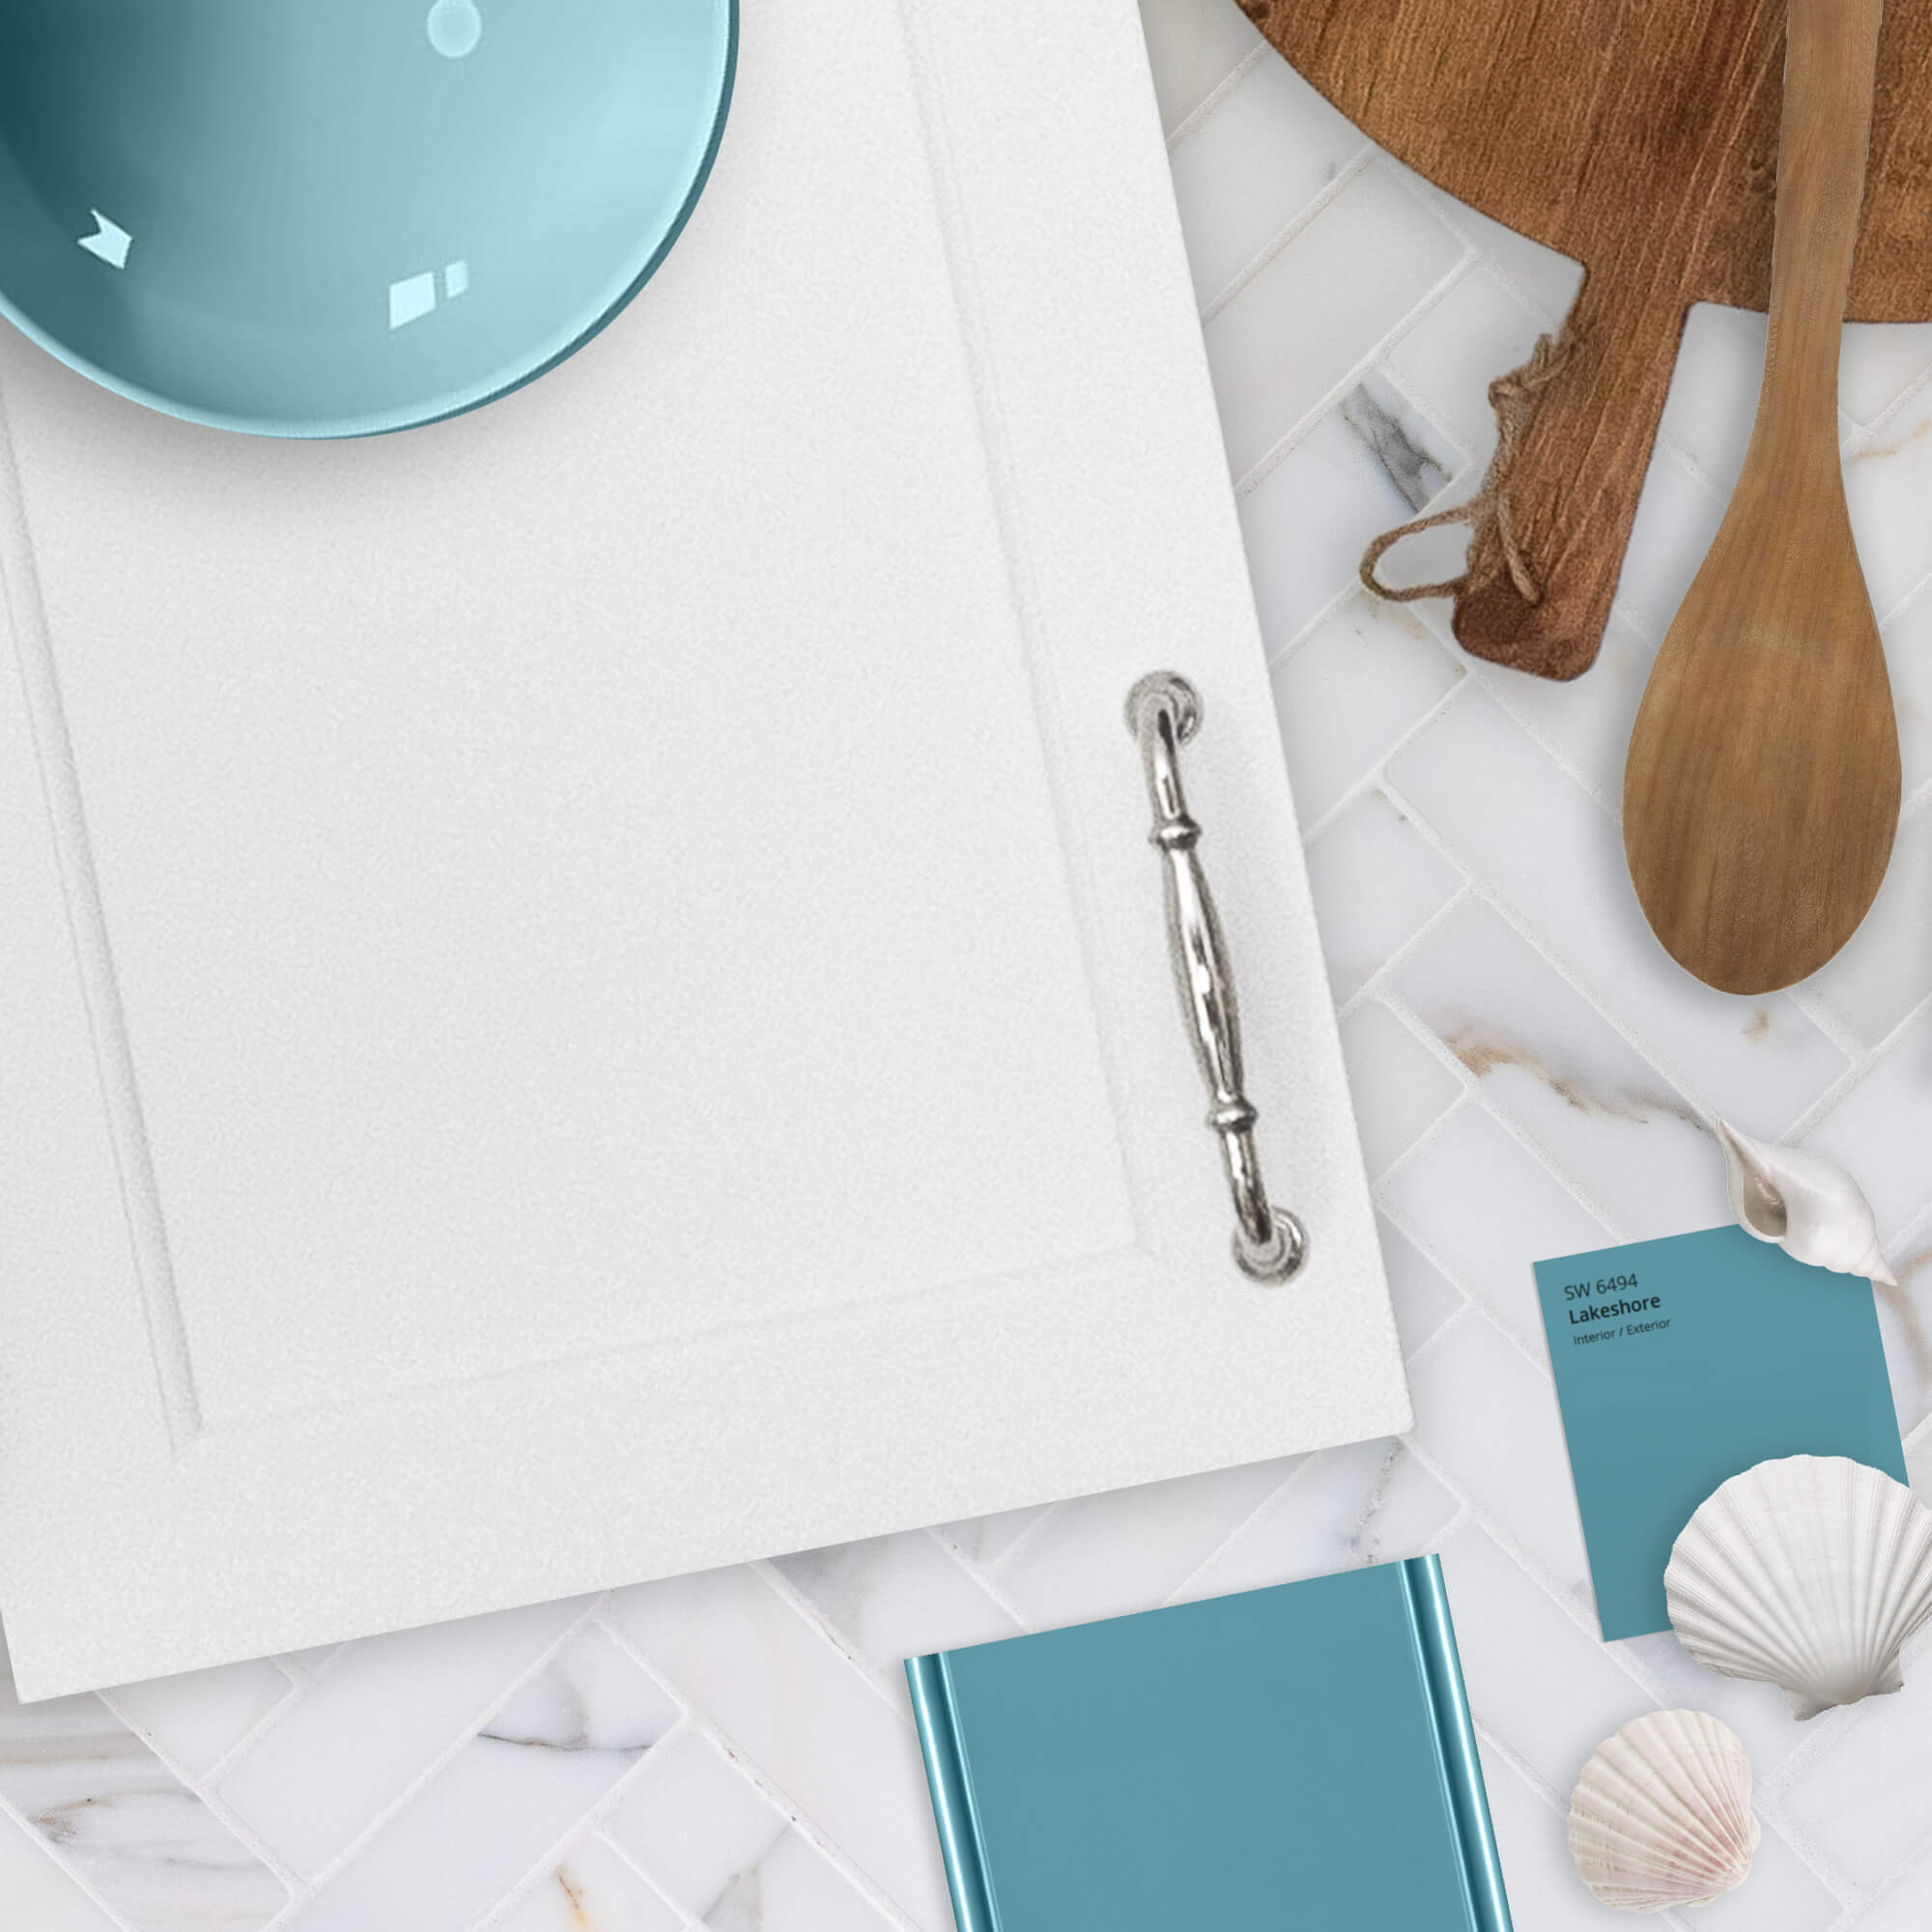 """Dura Supreme Cabinetry is shown in the Arcadia Panel door style (with a custom edge profile) in """"White"""" paint for the perimeter and finish sample of a Personal Paint Match finish to Sherwin-Williams """"Lakeshore"""" SW 6494."""